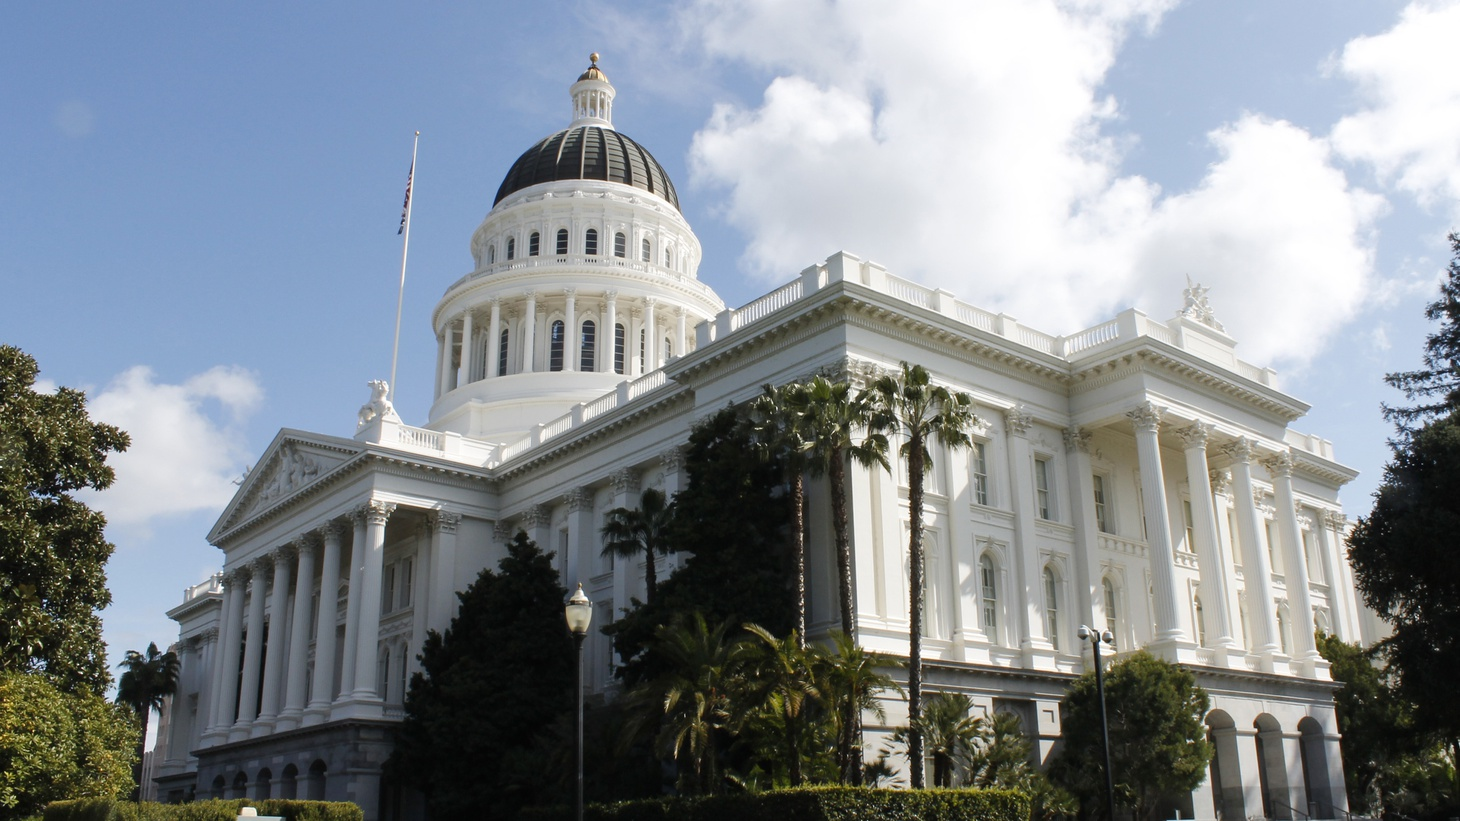 In Sacramento, there's lobbying and log-rolling in the crowded halls of the Capitol. Now it's all coming to a head in the chambers of the Assembly and Senate as another legislative session moves toward adjournment at the end of this week.